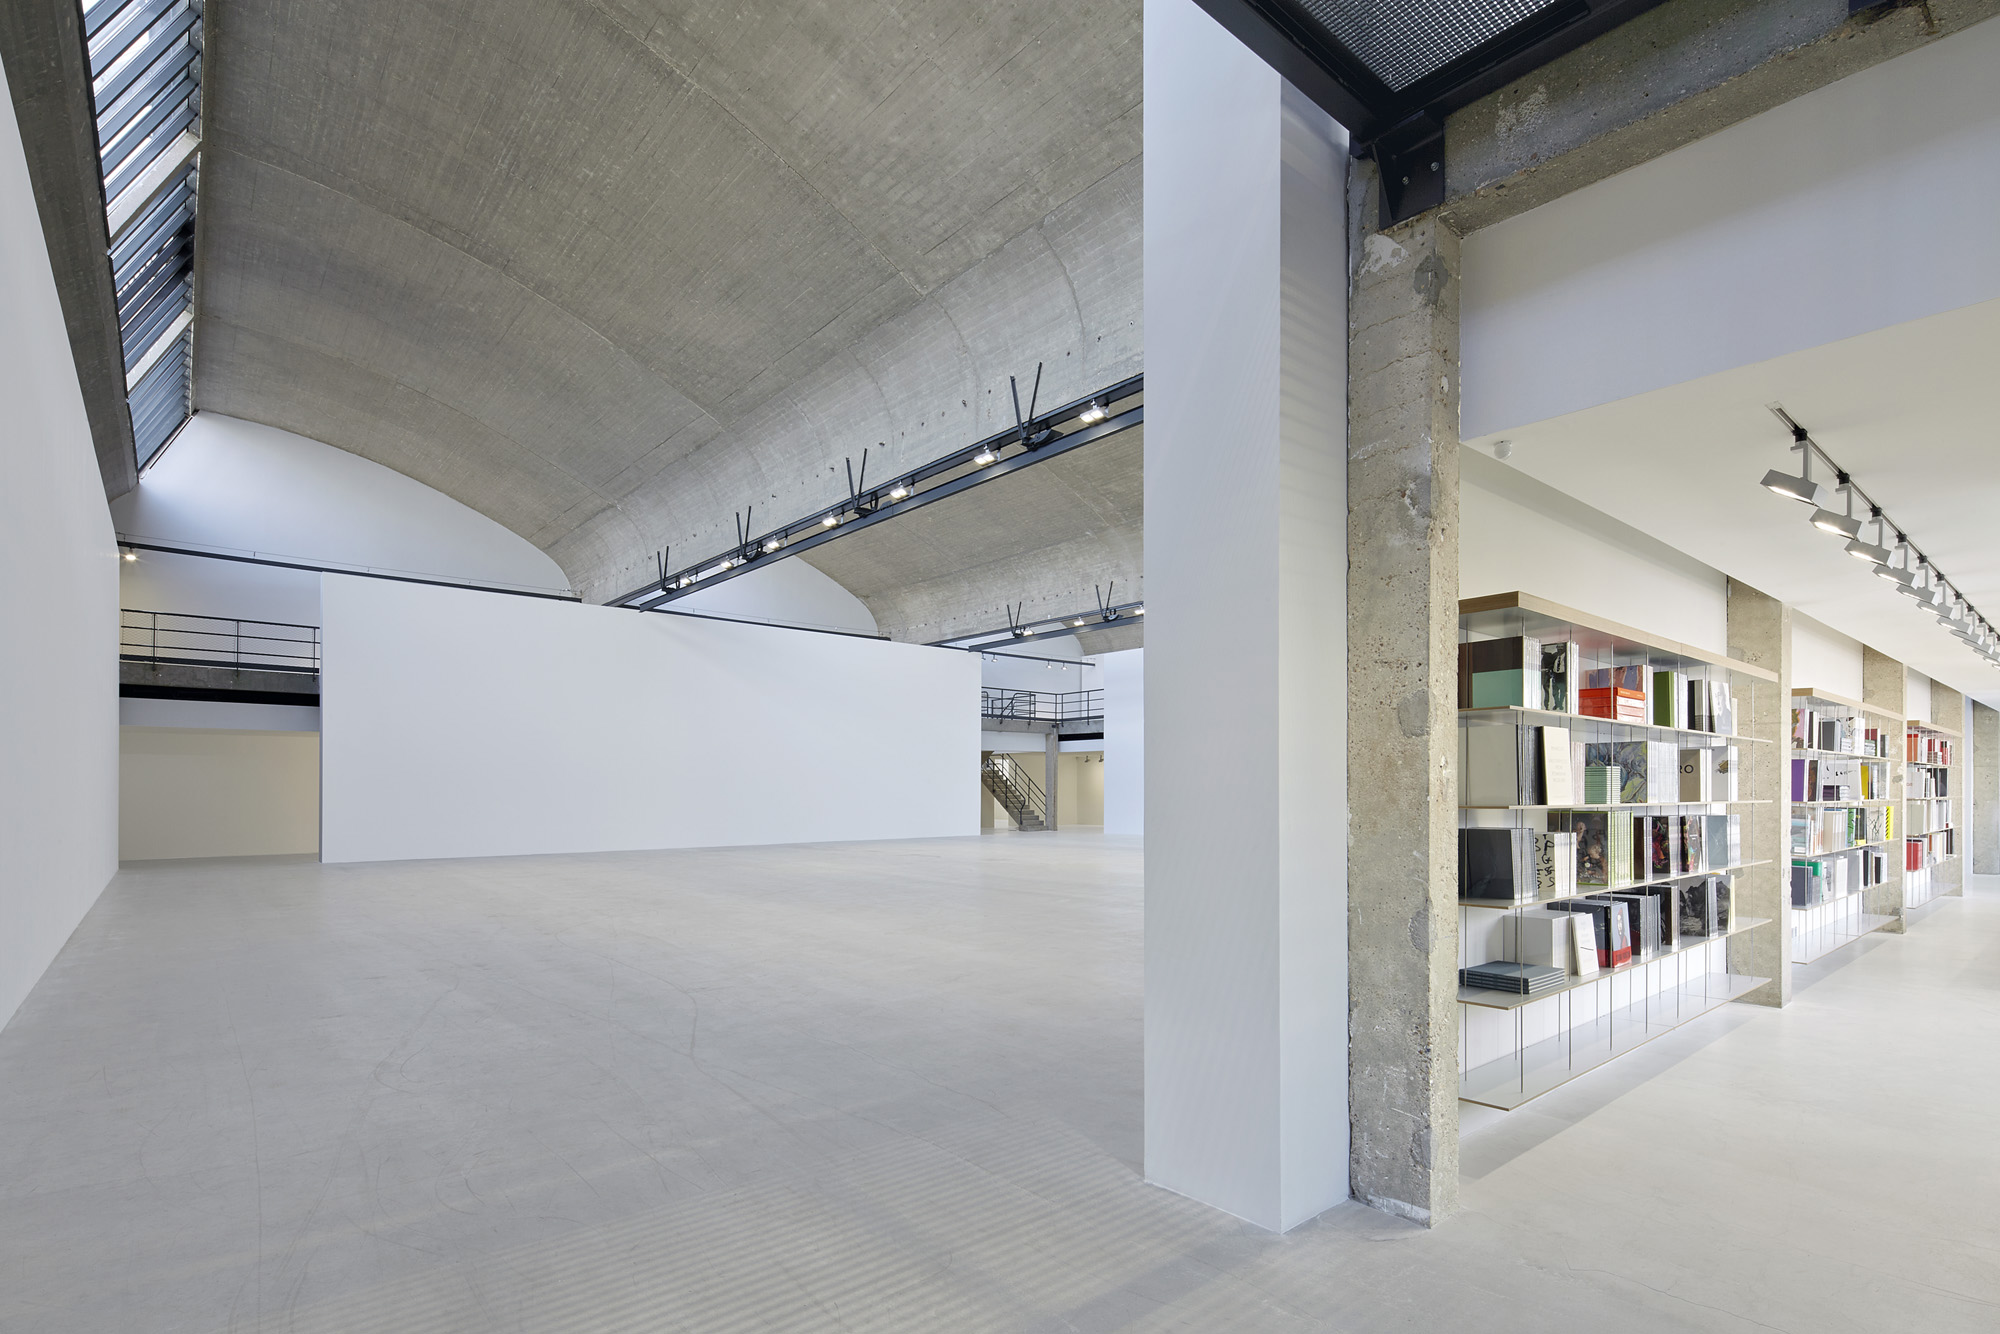 Gagosian-Gallery-Le-Bourget-2013-14-1